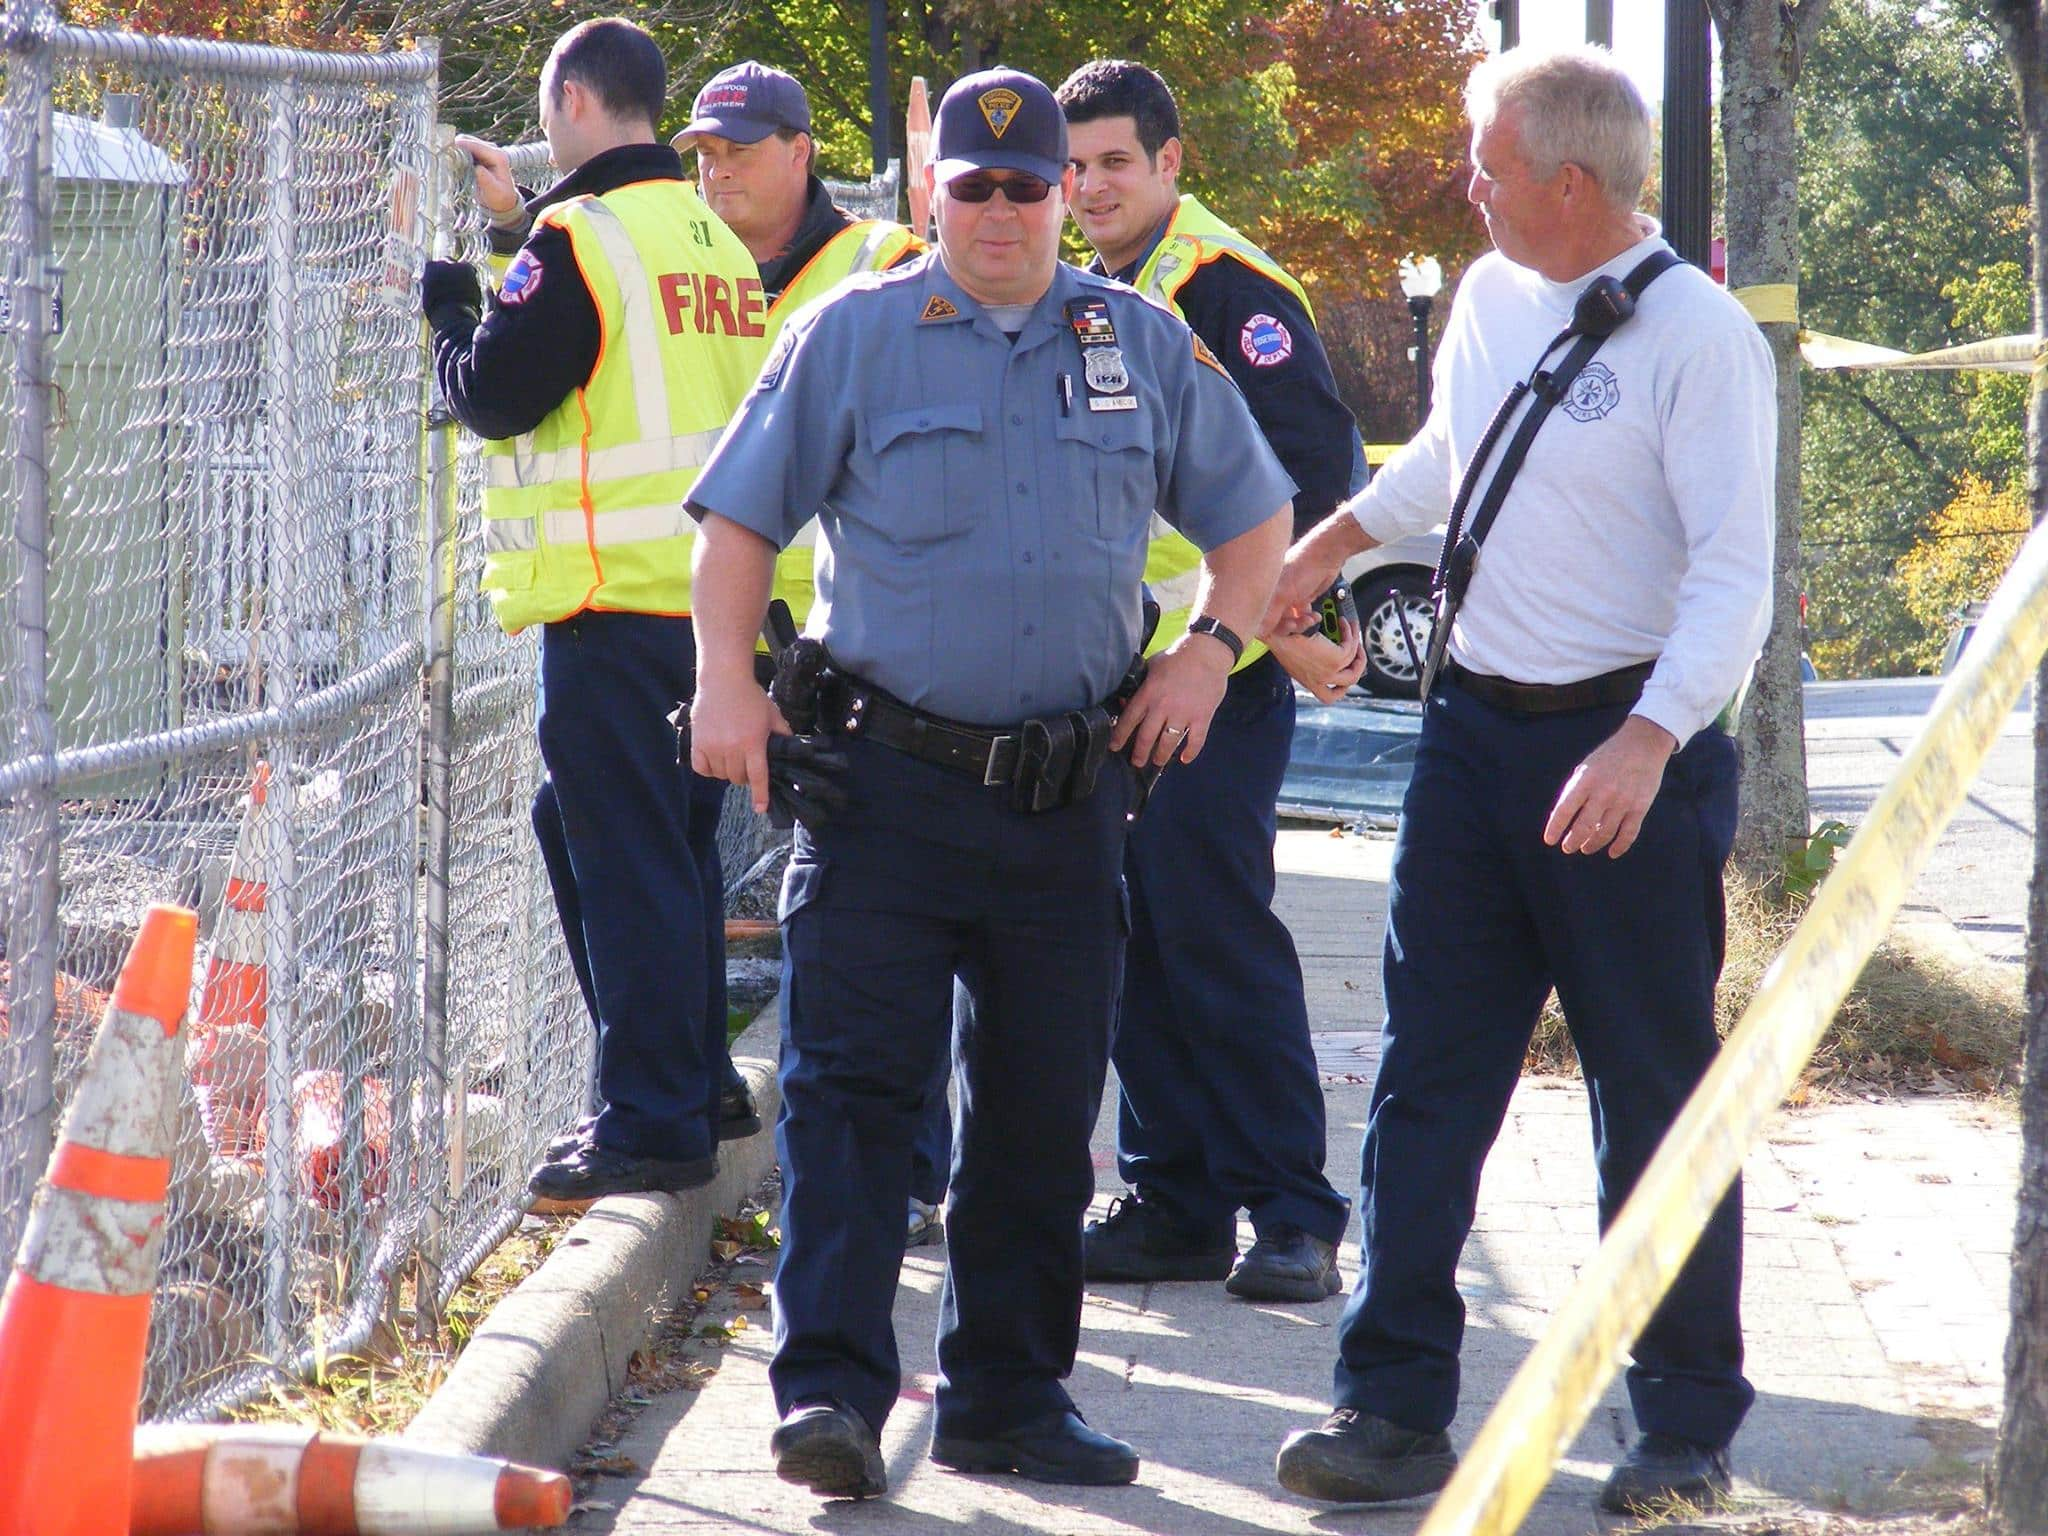 High Winds Toppled Fence at Construction Site In Ridgewood